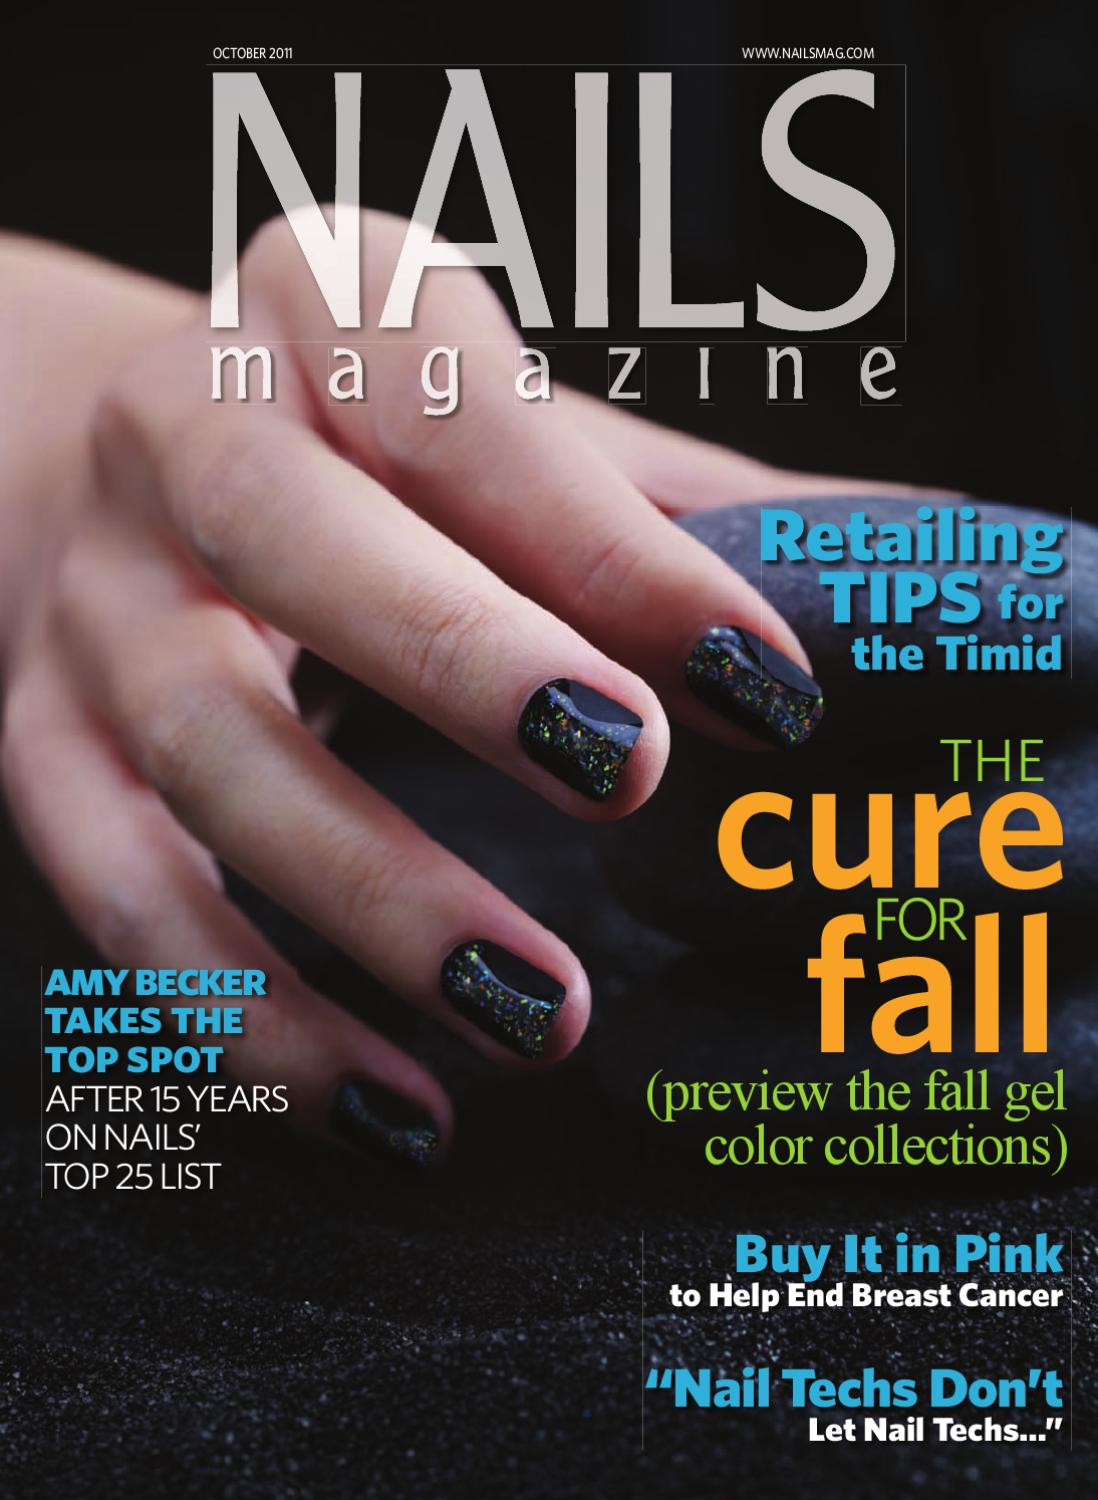 Nails Magazine October 2011 by Bobit Business Media issuu